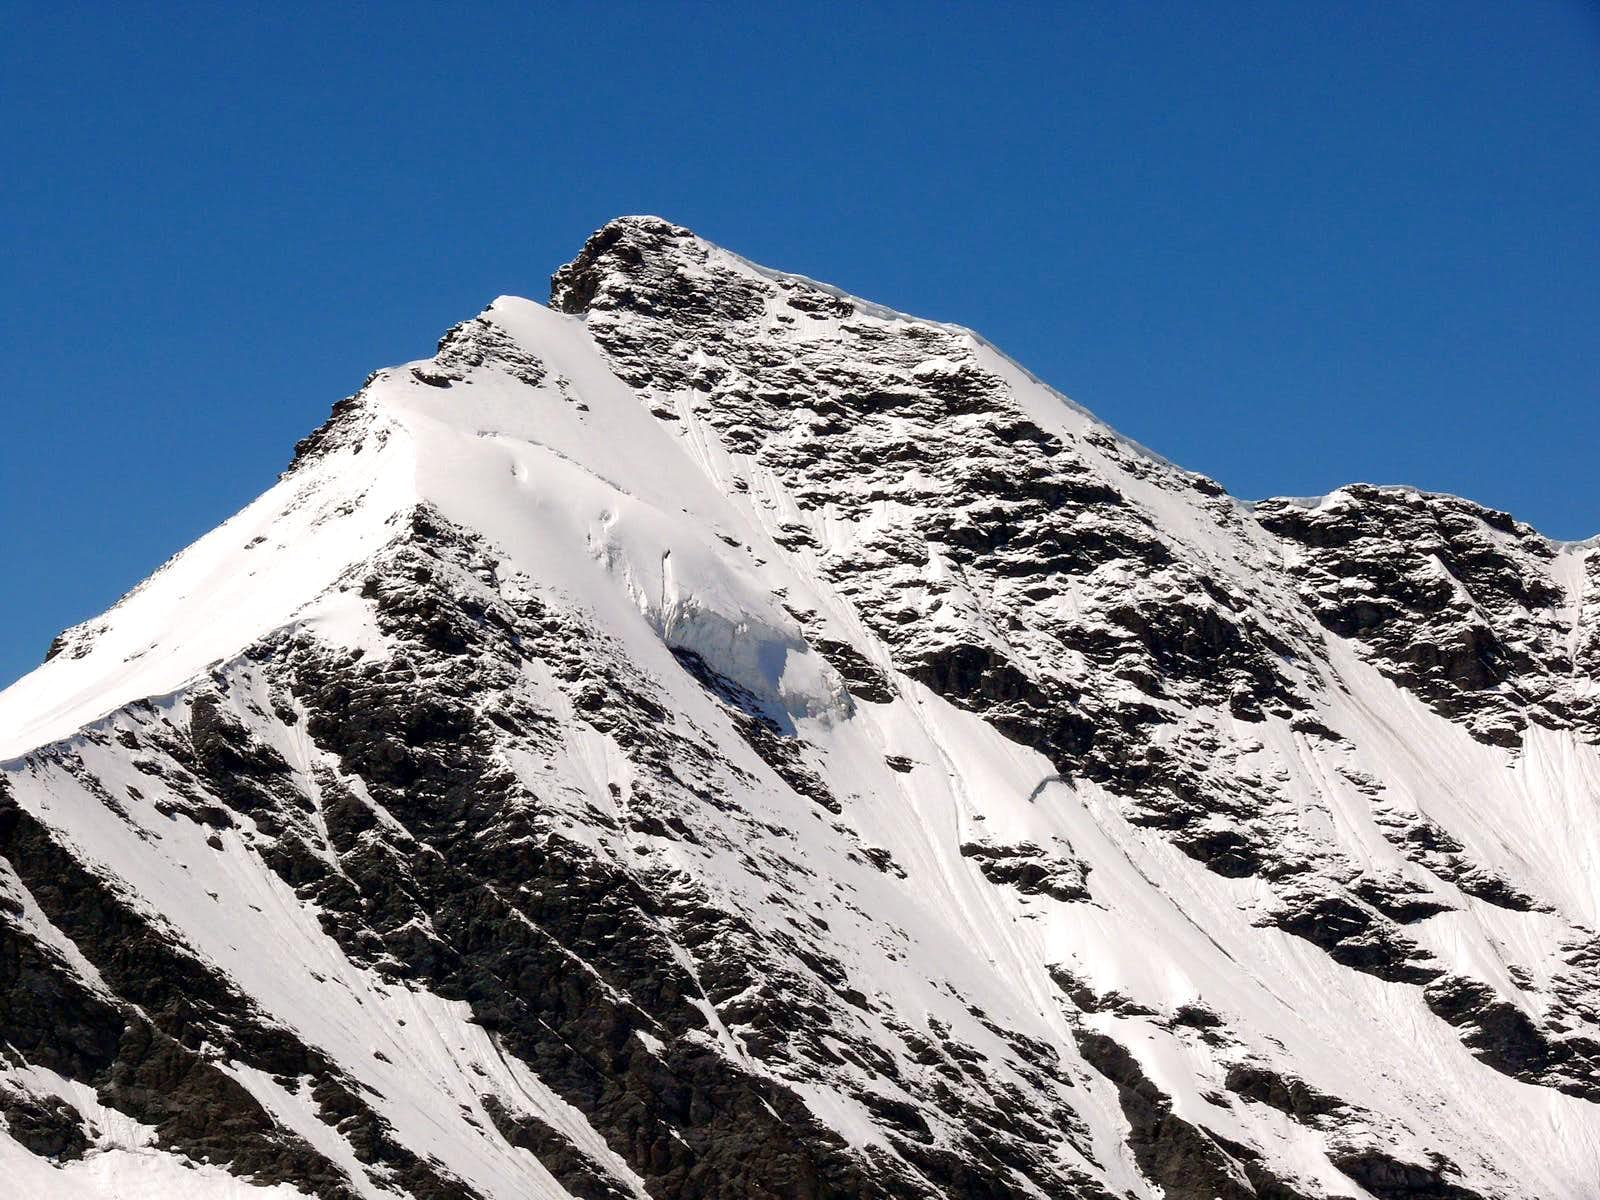 The famous 3.500m in the Aosta Valley and the normal route or no <b>(Valgrisenche Valley)</b>